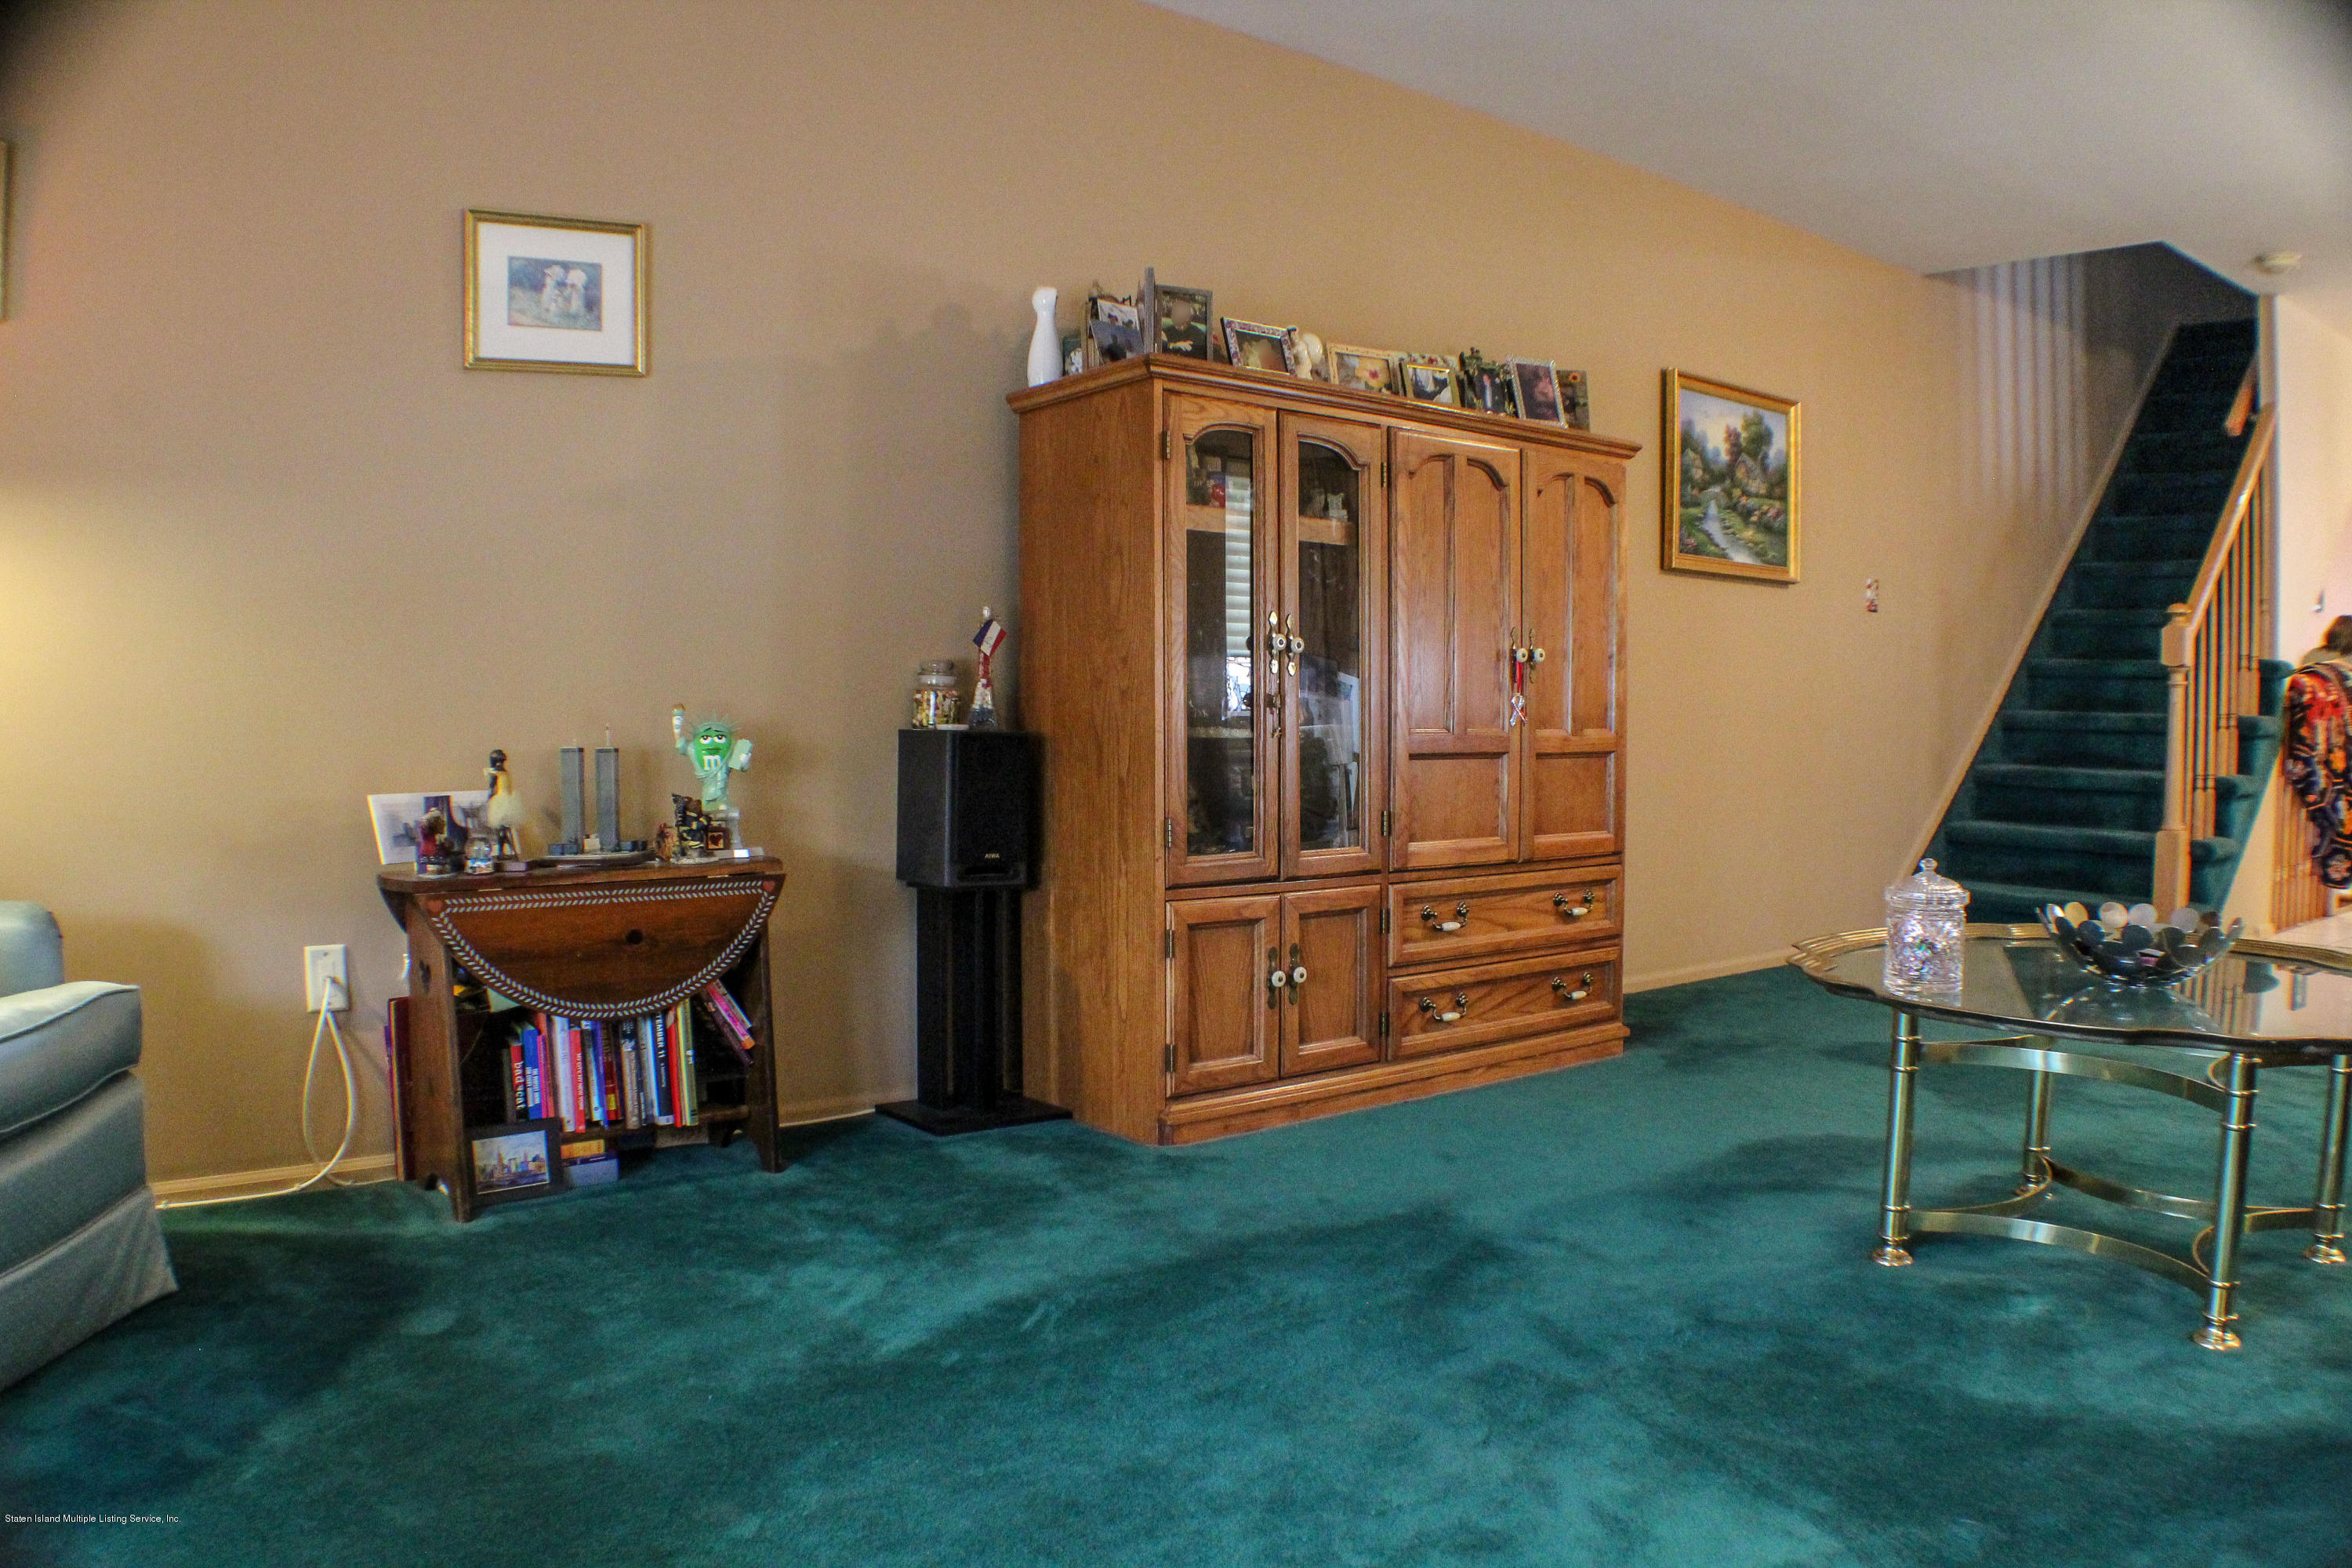 Single Family - Semi-Attached 52 Belair Lane  Staten Island, NY 10305, MLS-1126177-21